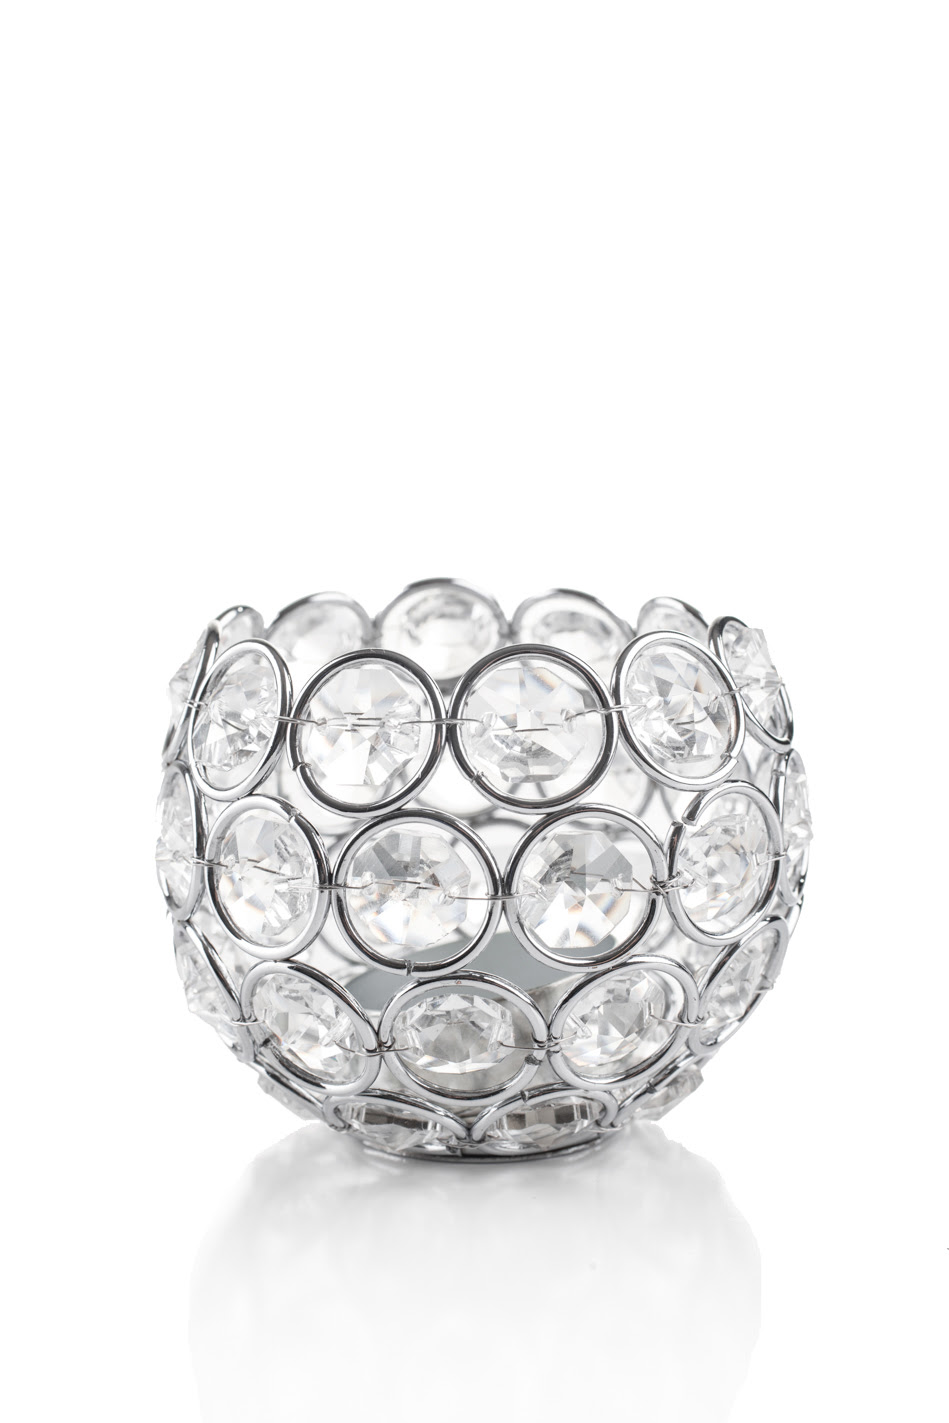 Round Beaded Crystal Votive Candle Holders, Small 3 Inches